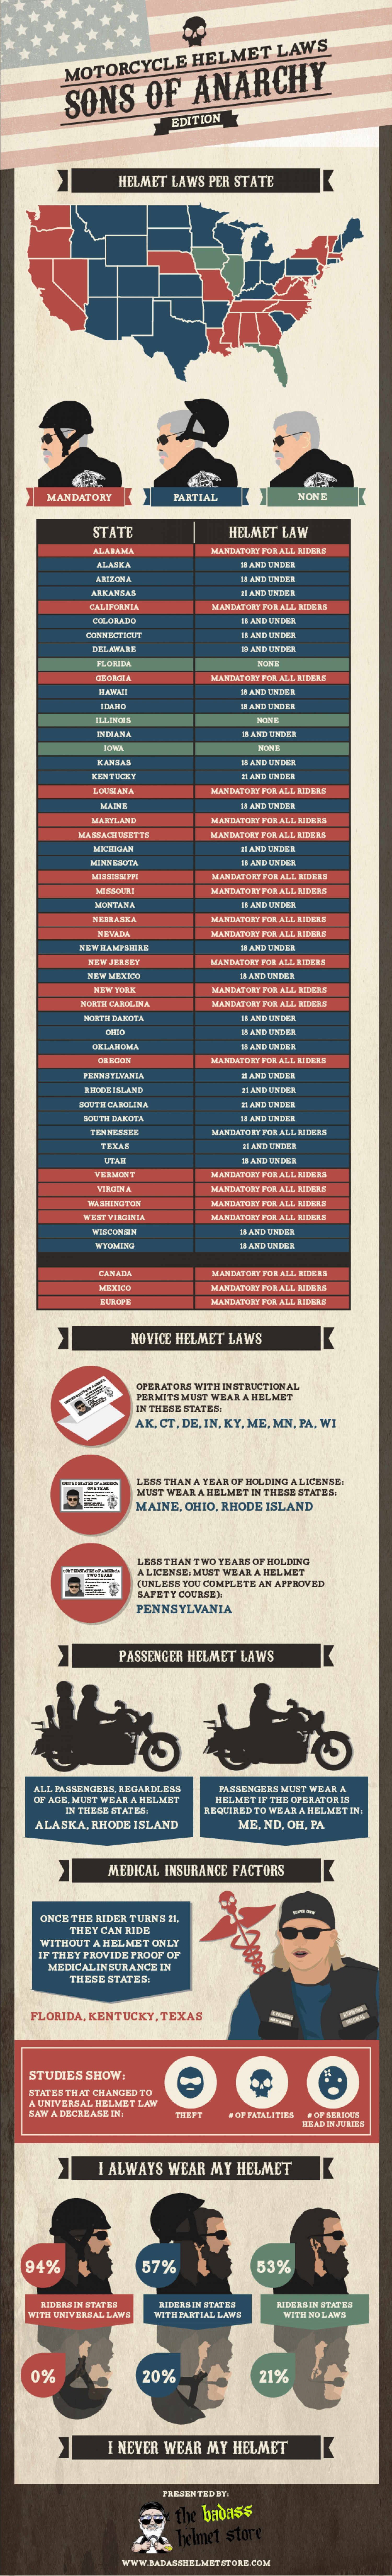 Sons of Anarchy infographic on motorcycle helmet laws by the badasshelmetstore.com Infographic